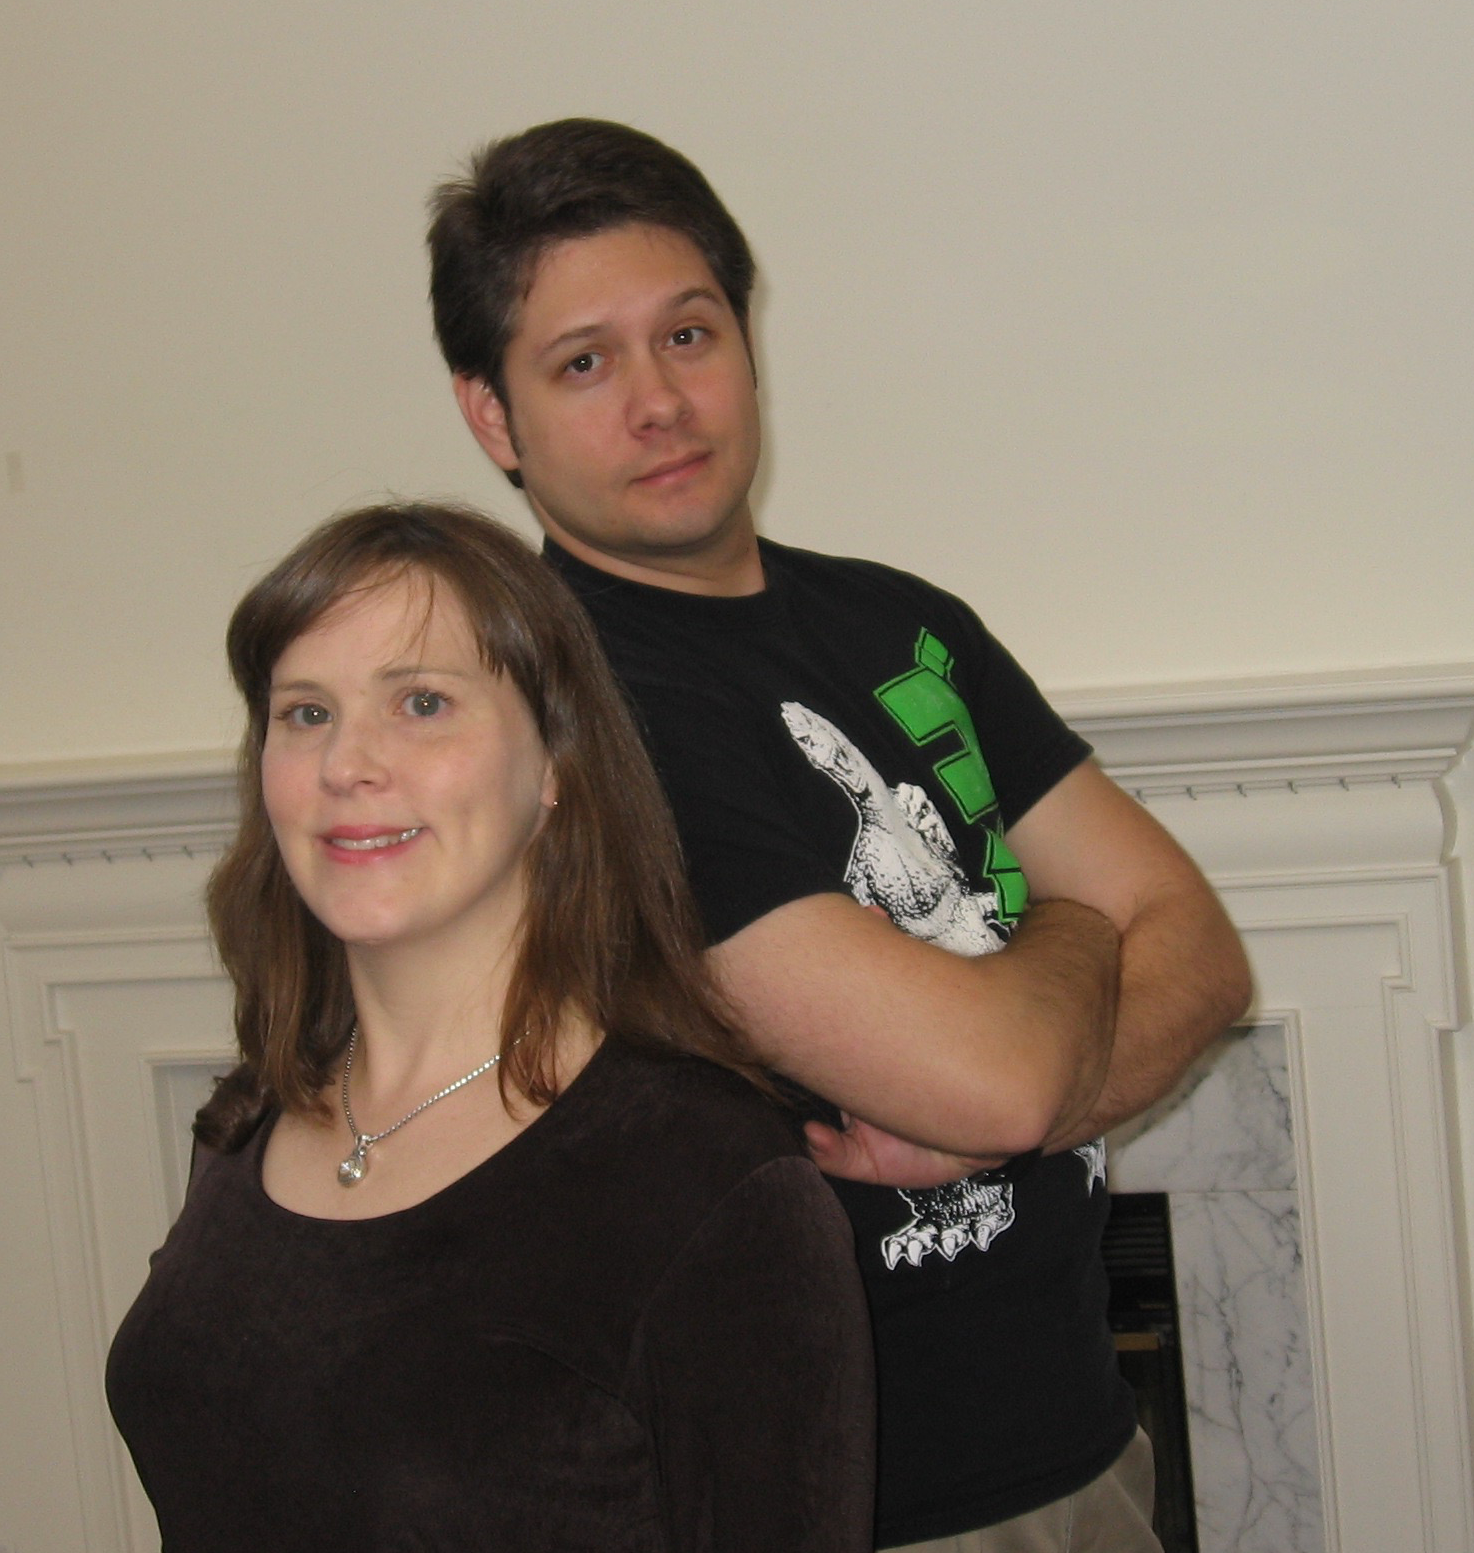 Heather and Rafael - owners of Whole Brain Escape Room